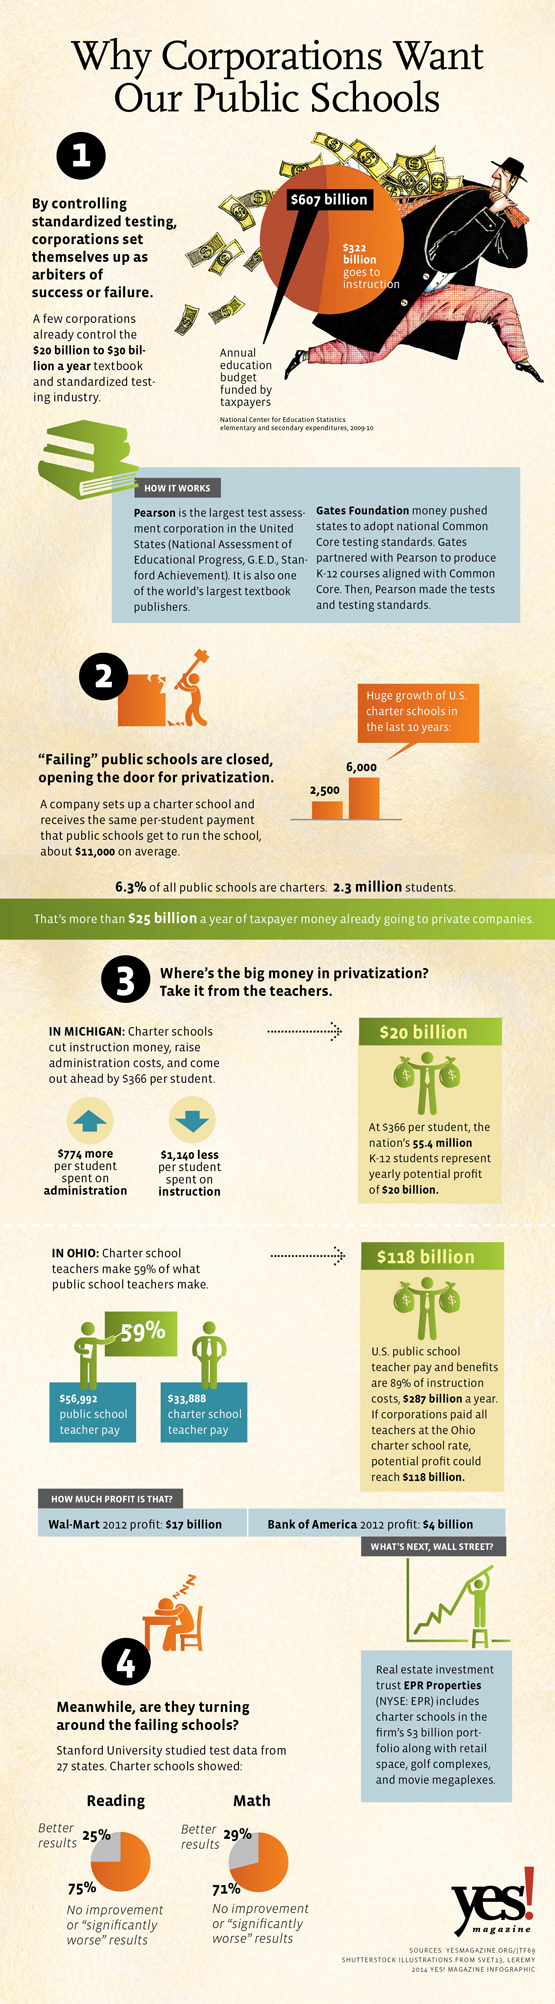 Why Corporations Want Our Public Schools